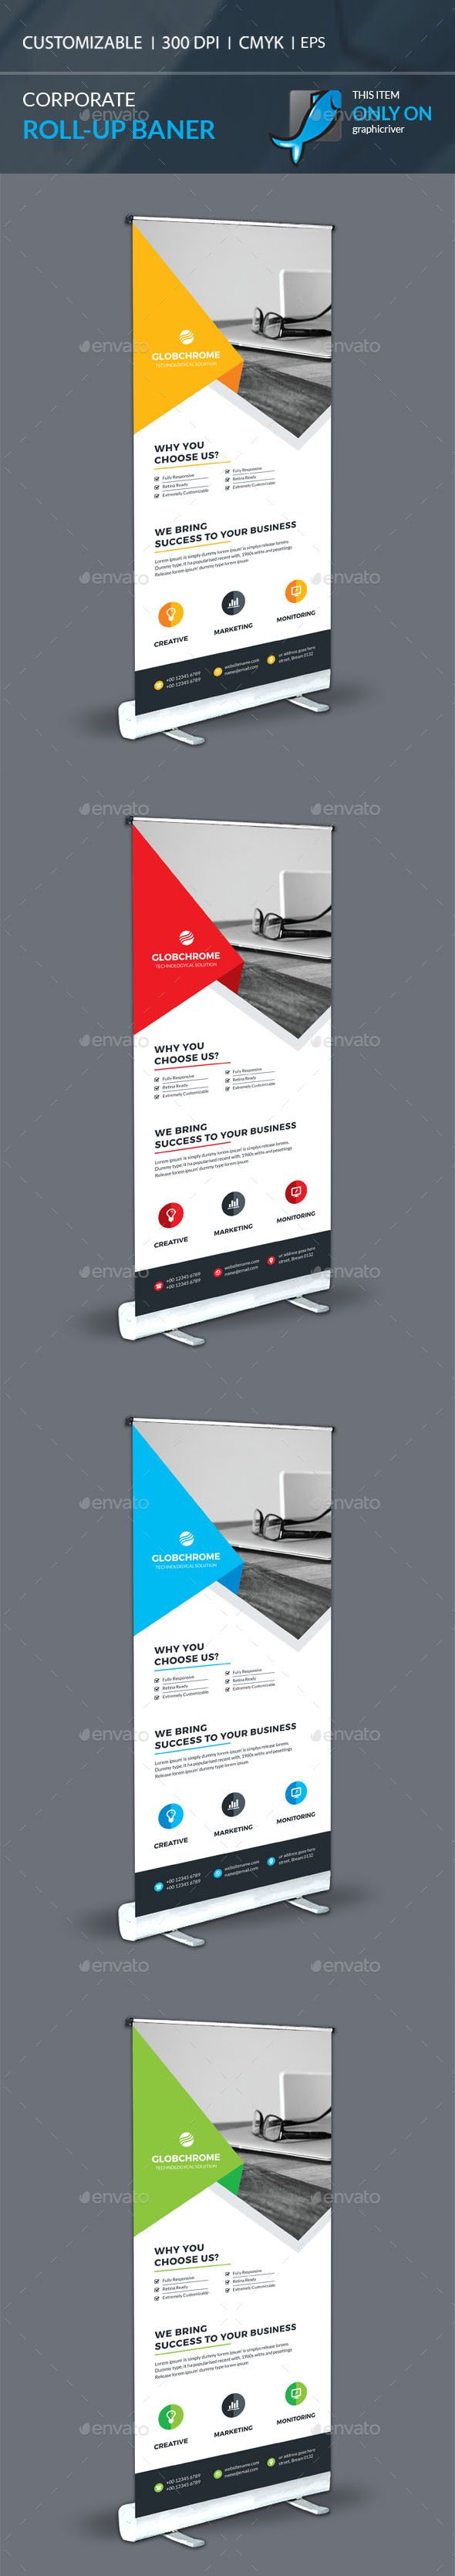 Corporate Roll-Up Template Vector EPS, AI. Download here: http://graphicriver.net/item/corporate-rollup/15719123?ref=ksioks